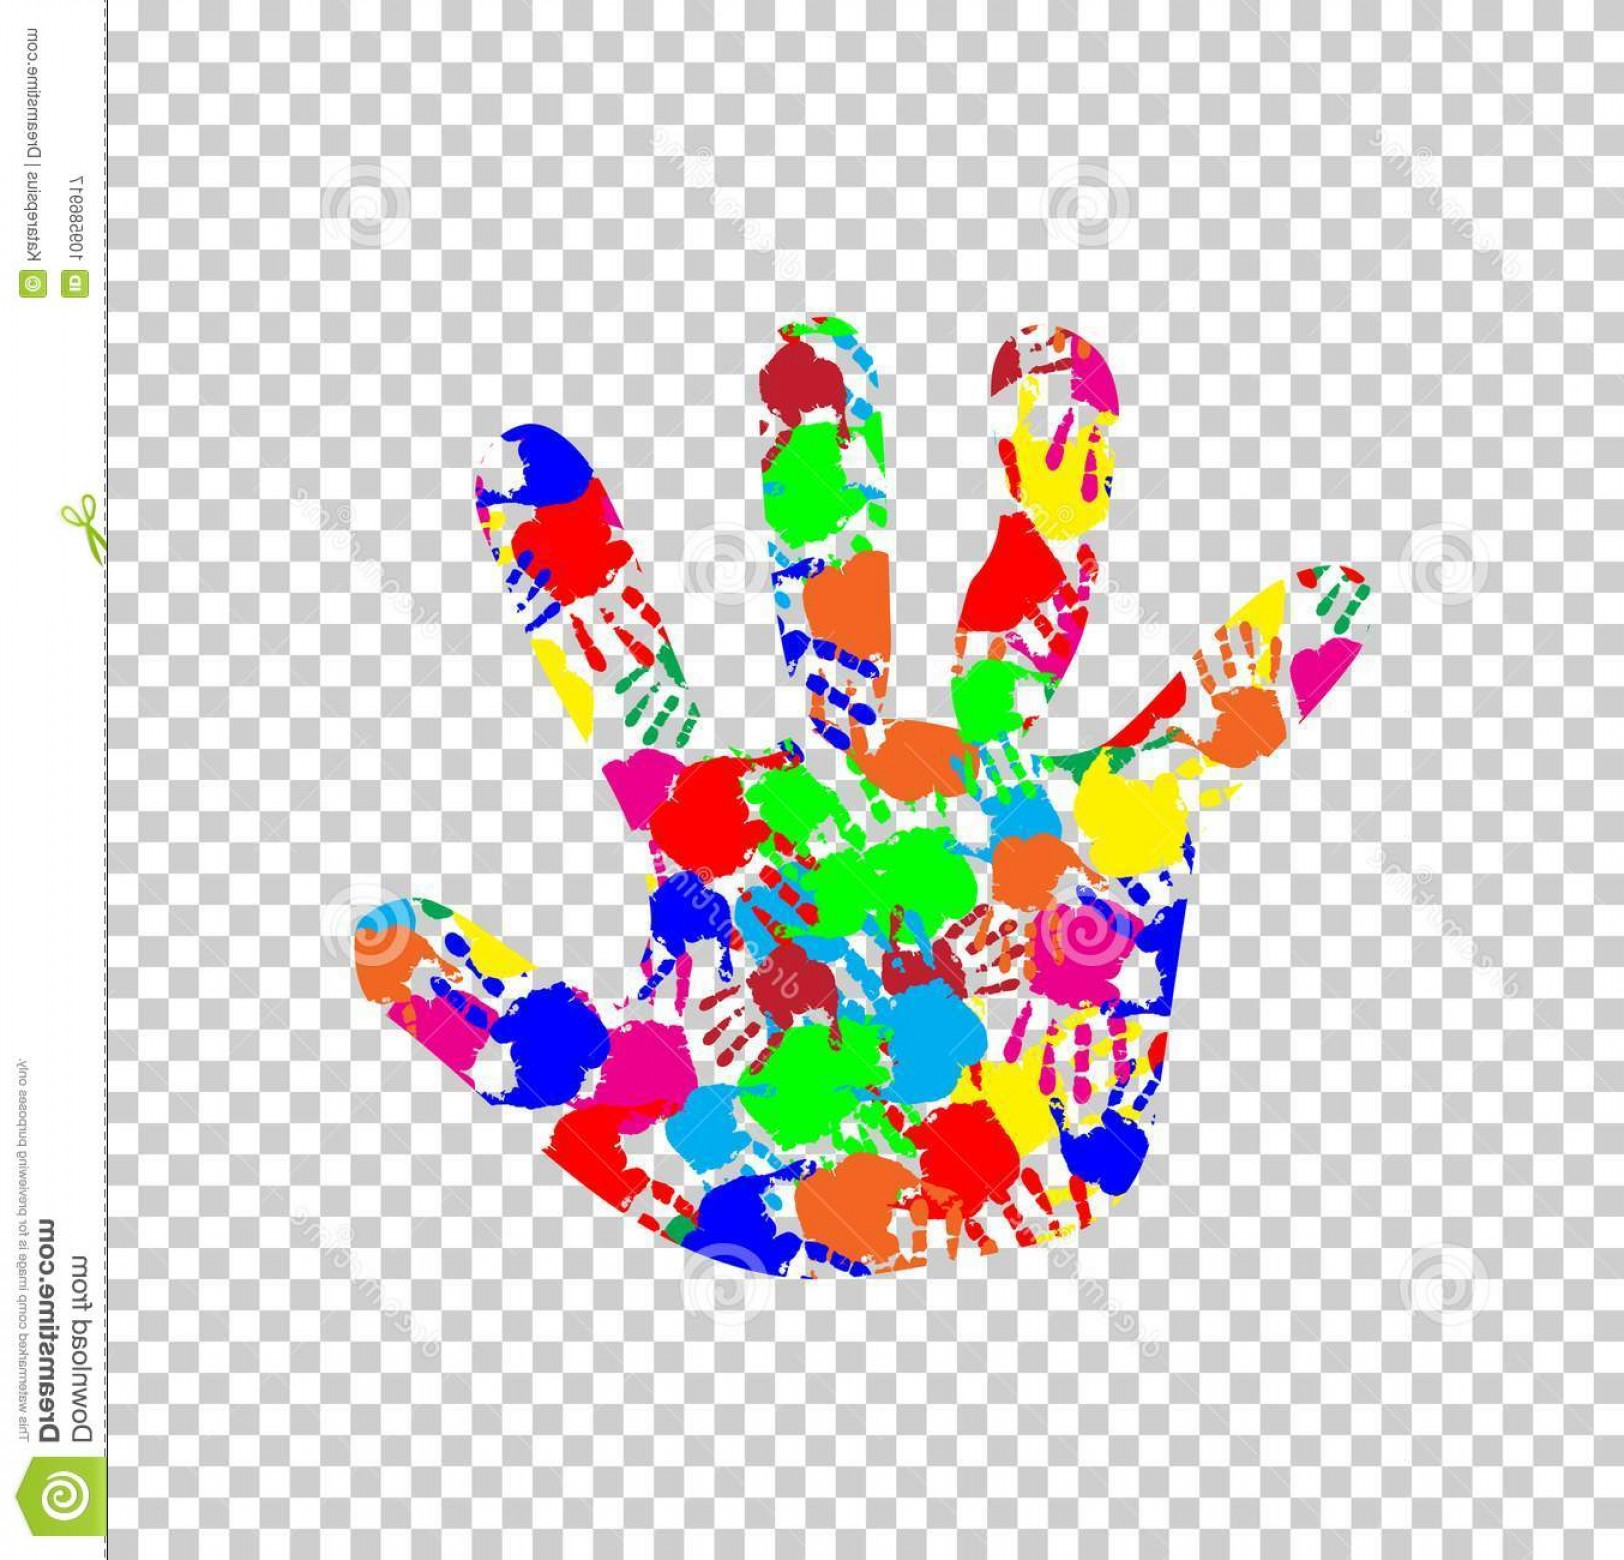 Hand Prints Vector Transparent Background: Rainbow Multicolored Silhouette Baby Hand Colorful Handprint Pattern Inside Isolated Transparent Background Vector Image